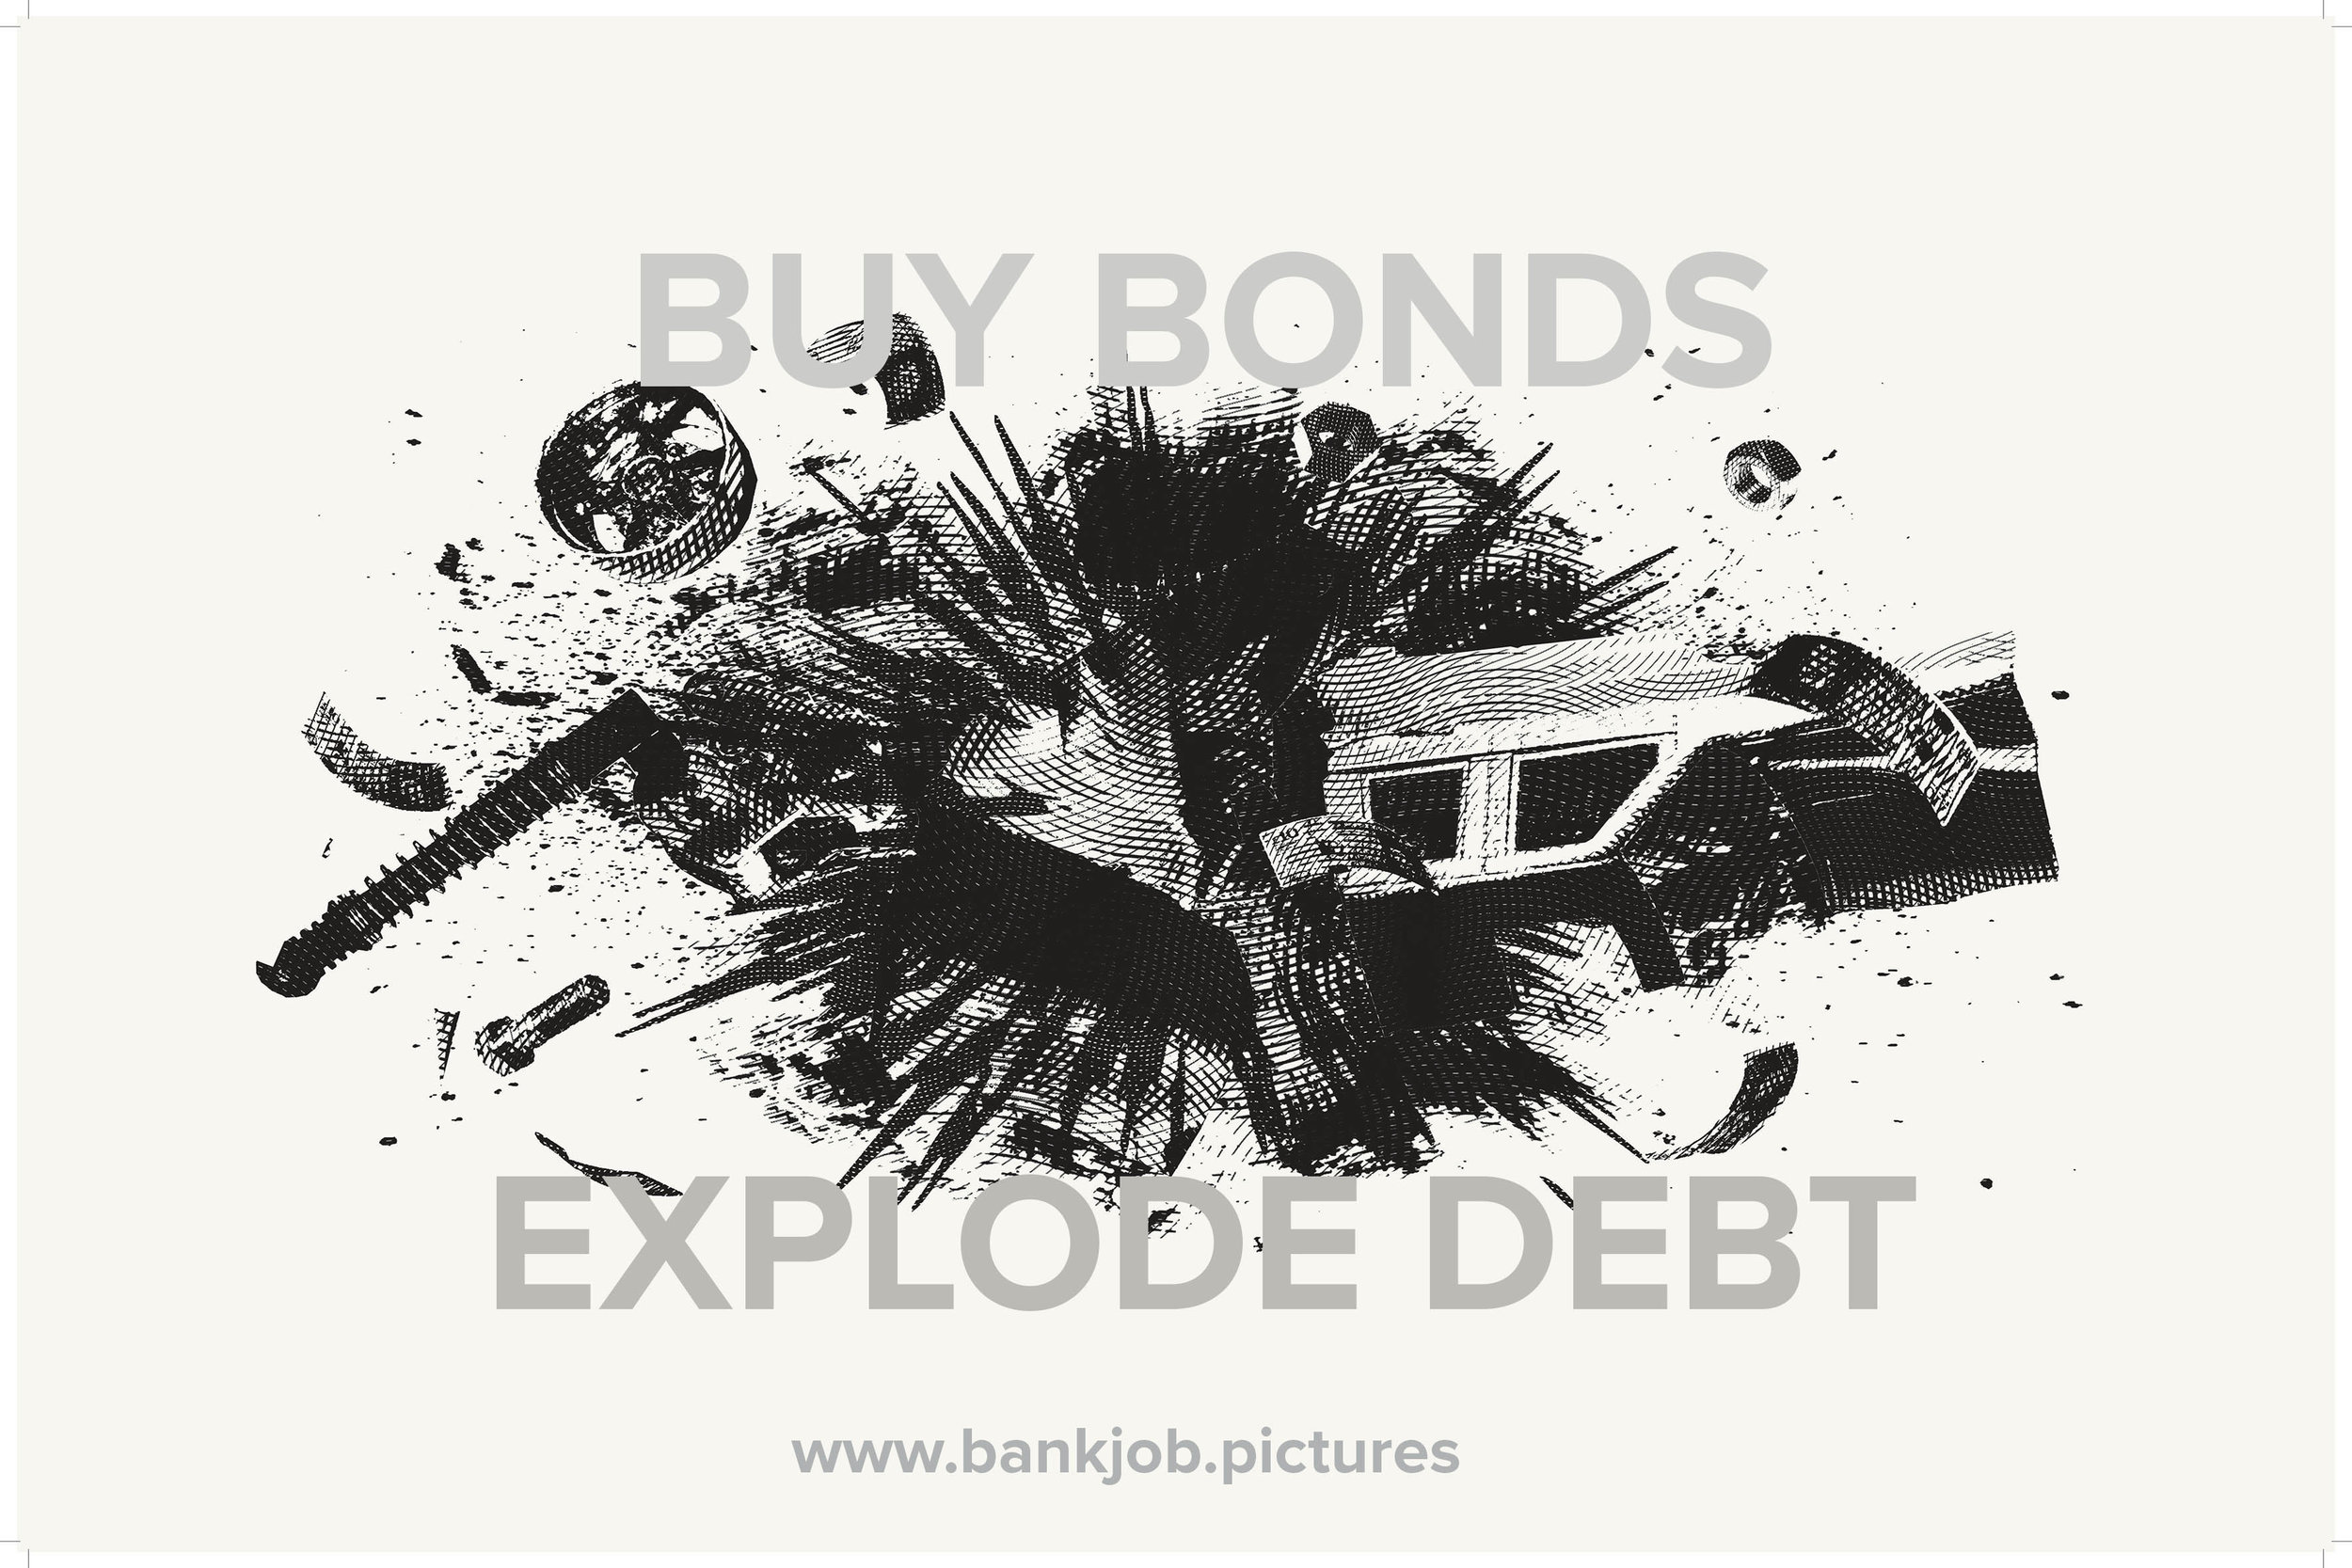 BUYING BONDS FINANCES THIS EXPLOSION - ITS FILMING, EXHIBITION TRANSFORMATION AND DISTRIBUTION. IT INCREASES THE IMPACT OF THIS ACT OF DEBT CANCELLATION AND EXPLODES THE CONVERSATION INTO PUBLIC CONSCIOUSNESS THROUGH THE MAKING AND DISTRIBUTION OF THE FILM 'BANK JOB.'.